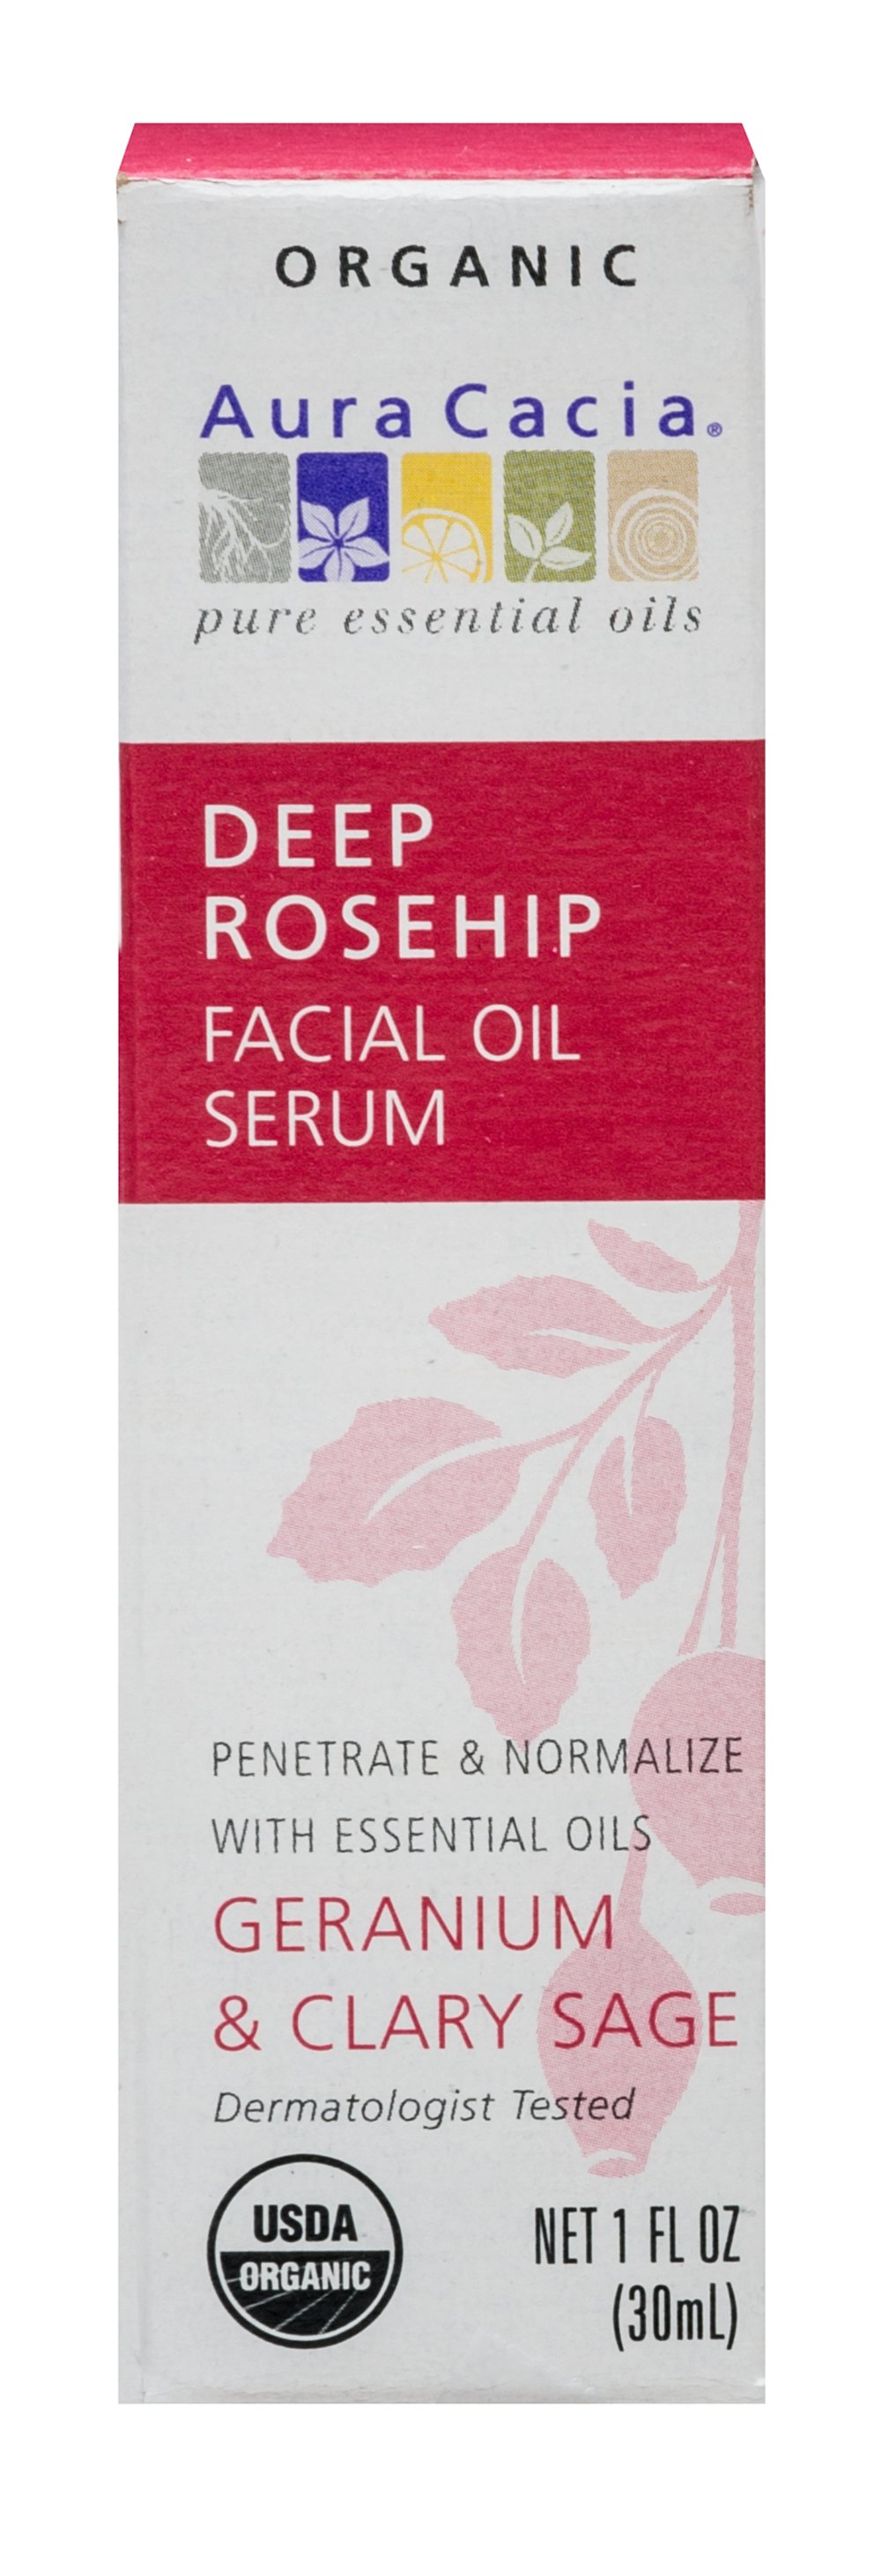 Deep Rosehip Facial Oil Serum <p><strong>From the manufacturer: </strong>While regular cleansing removes oil, dirt, and dead skin, it also exhausts the skin of its natural hydration and moisture-preserving oil. Rosehip oil's high proportion of 94% unsaturated essential fatty acids enhanced with Vitamin E will absorb quickly and deeply into your skin to replace essential elements. Apply to damp skin immediately after cleansing and all that's lost can be beautifully resto